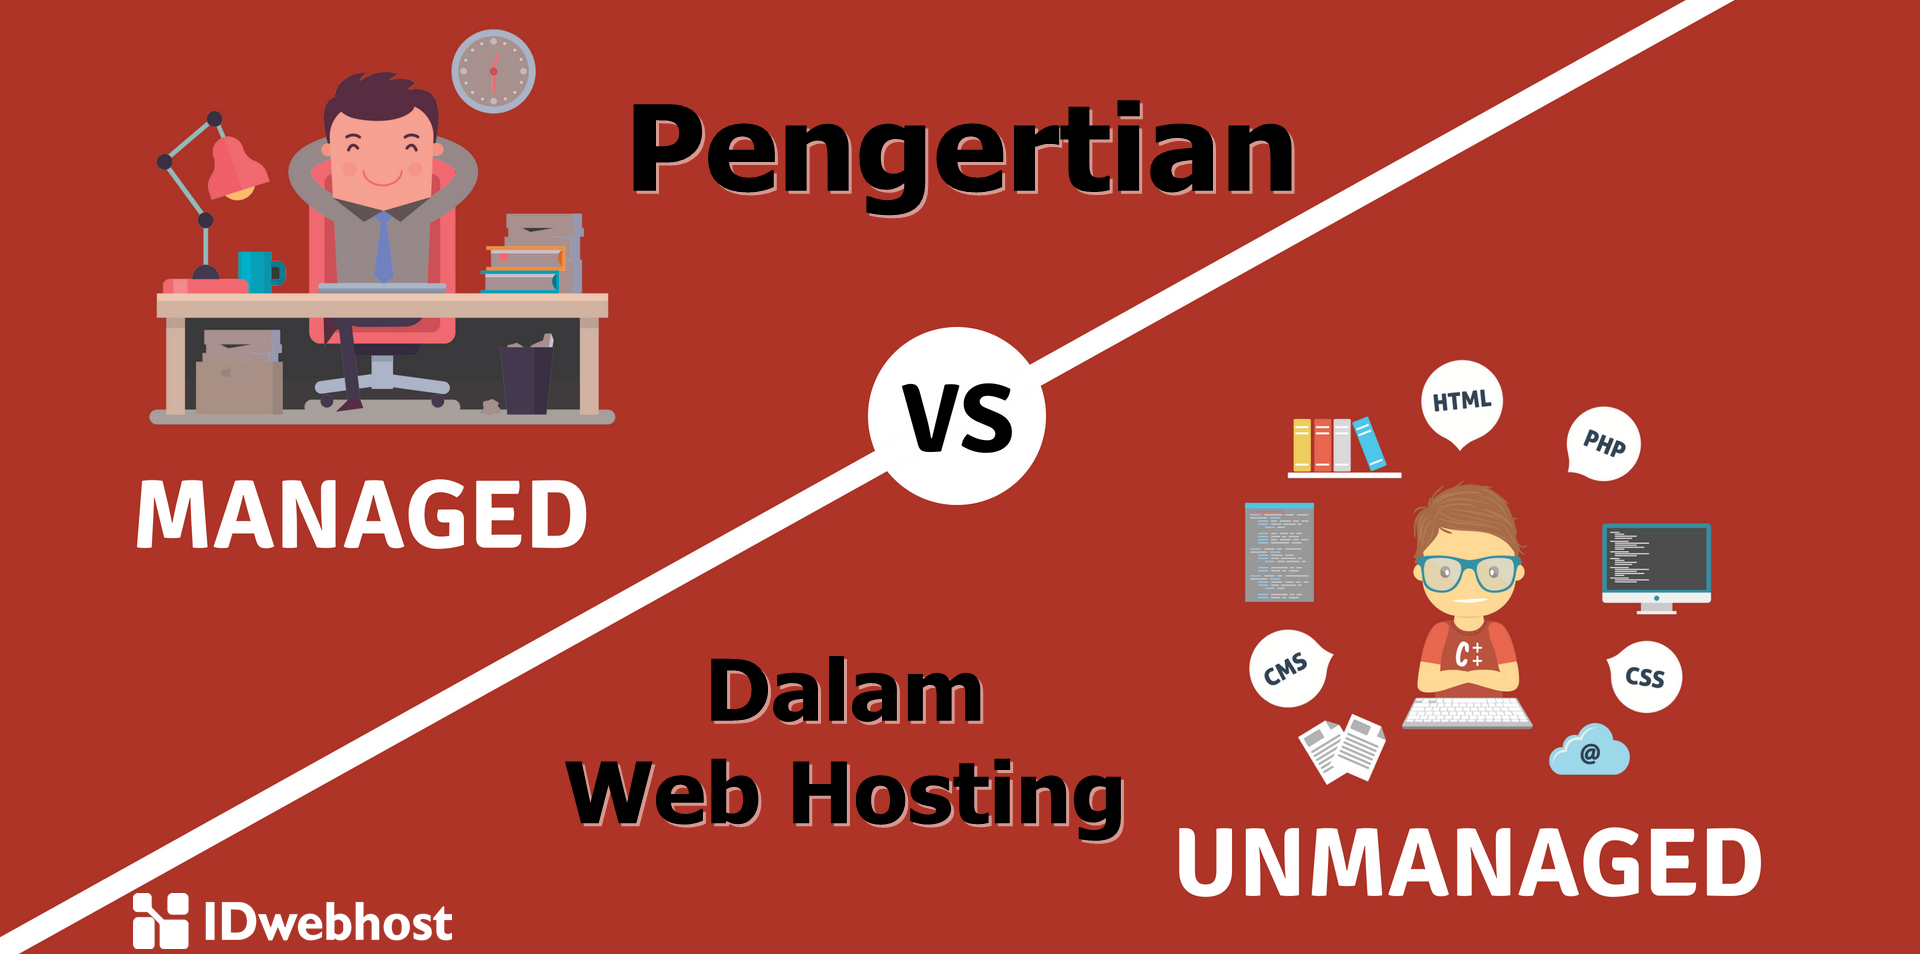 Pengertian Managed dan Unmanaged dalam Web Hosting